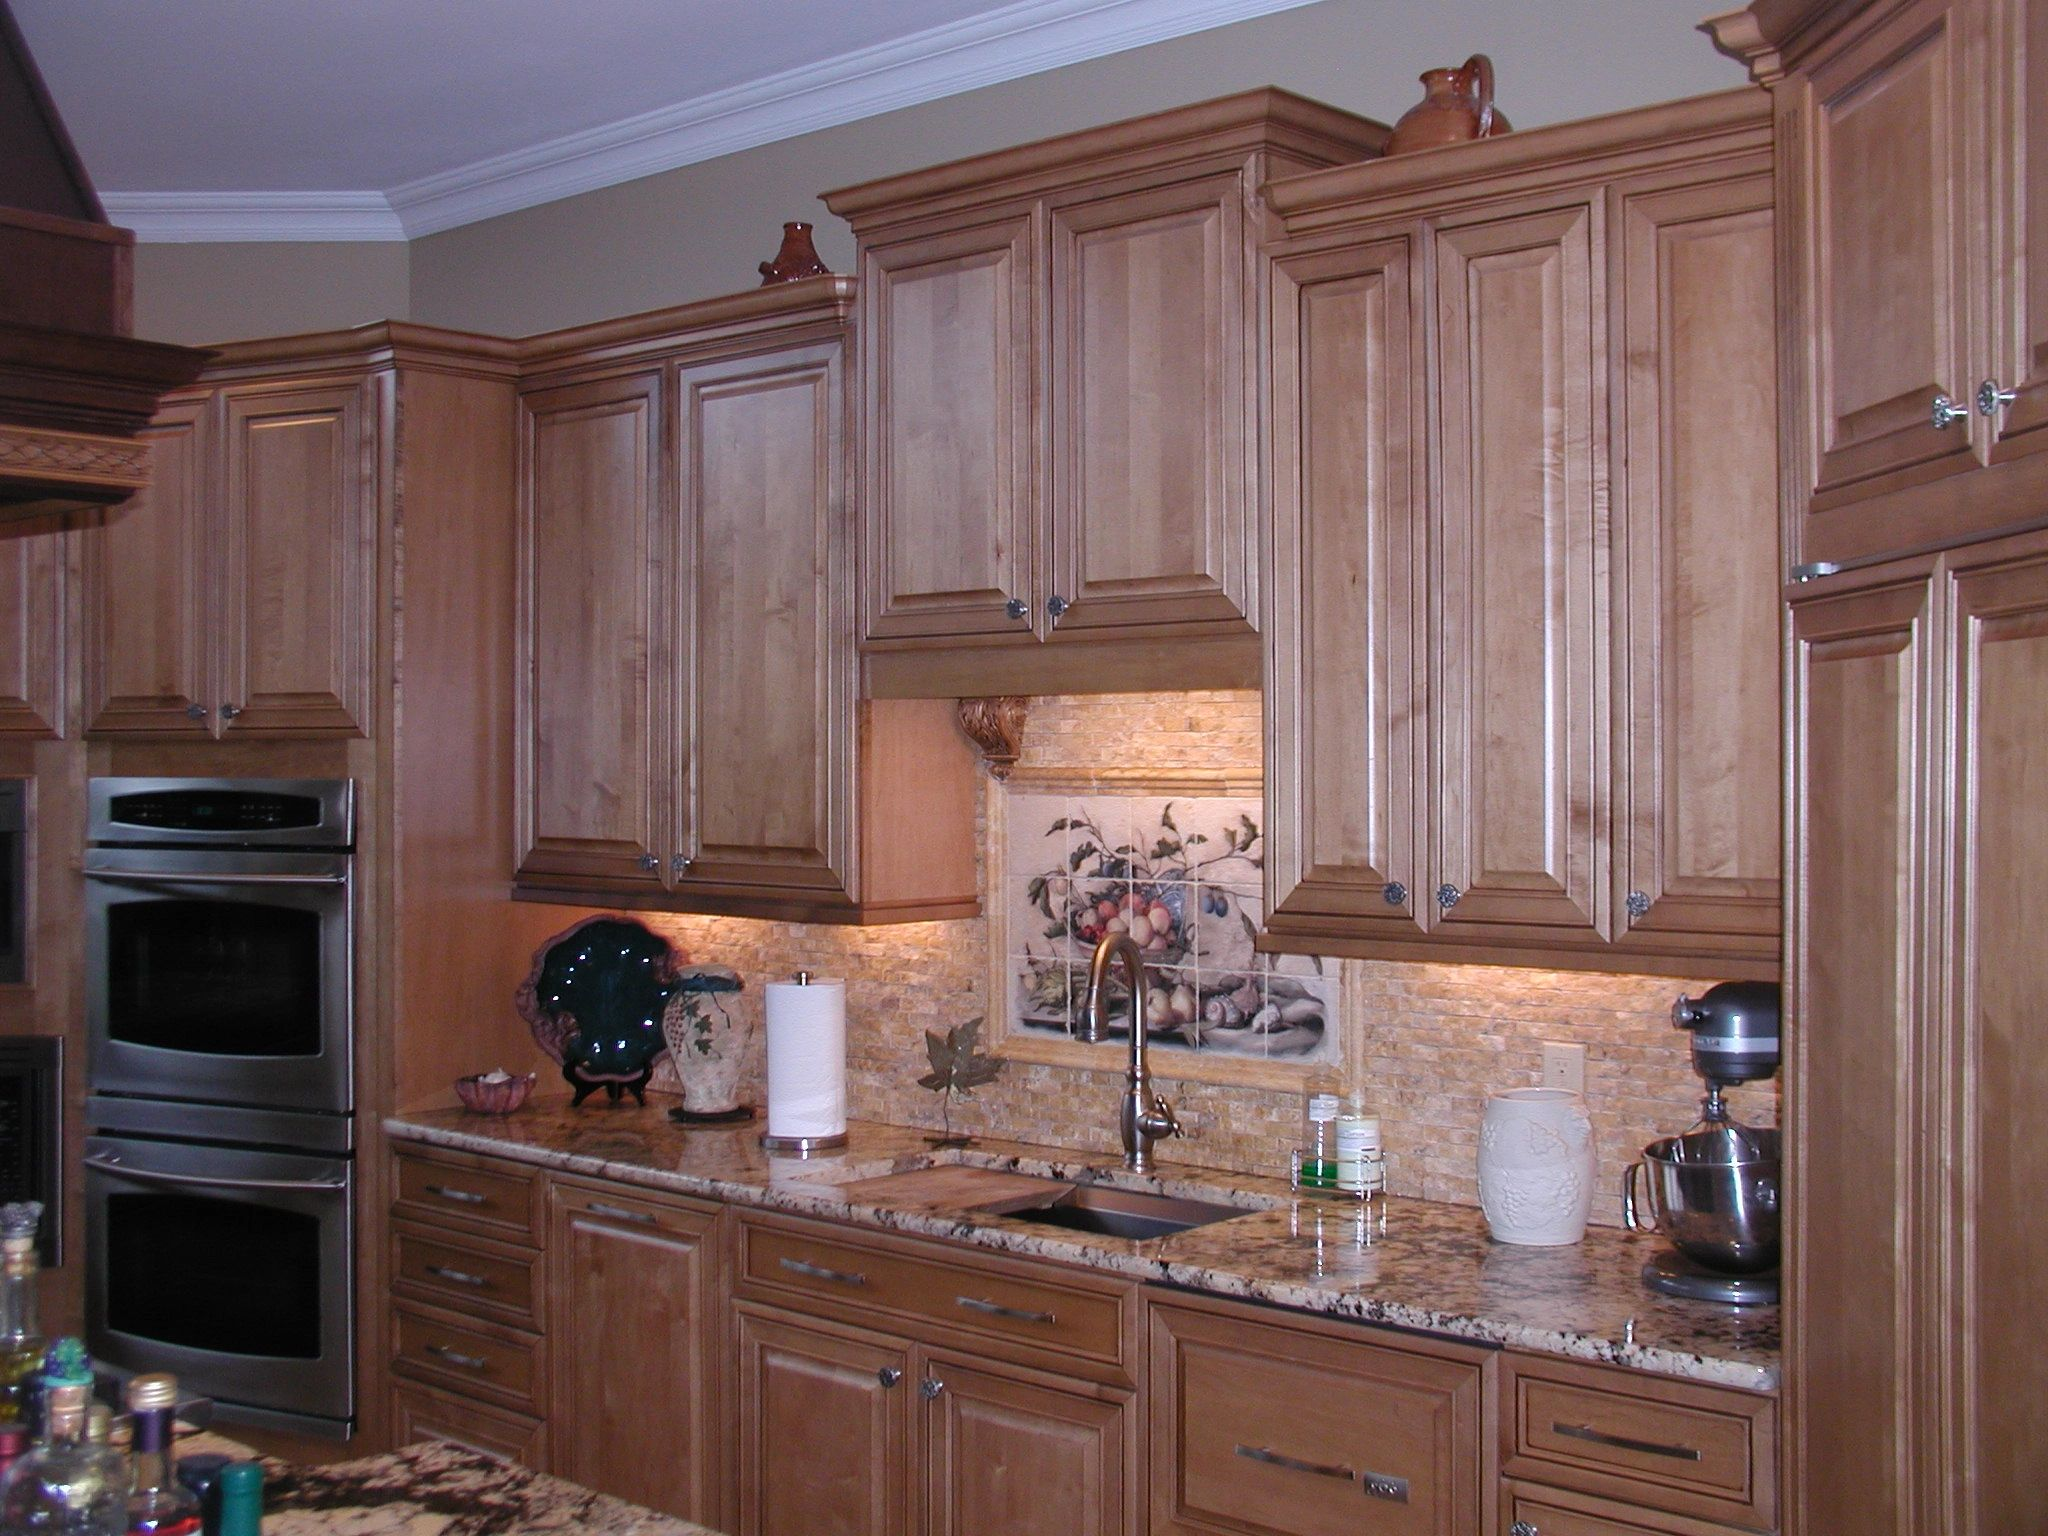 Cabinet Shops Near Me - At Home kitchens and baths